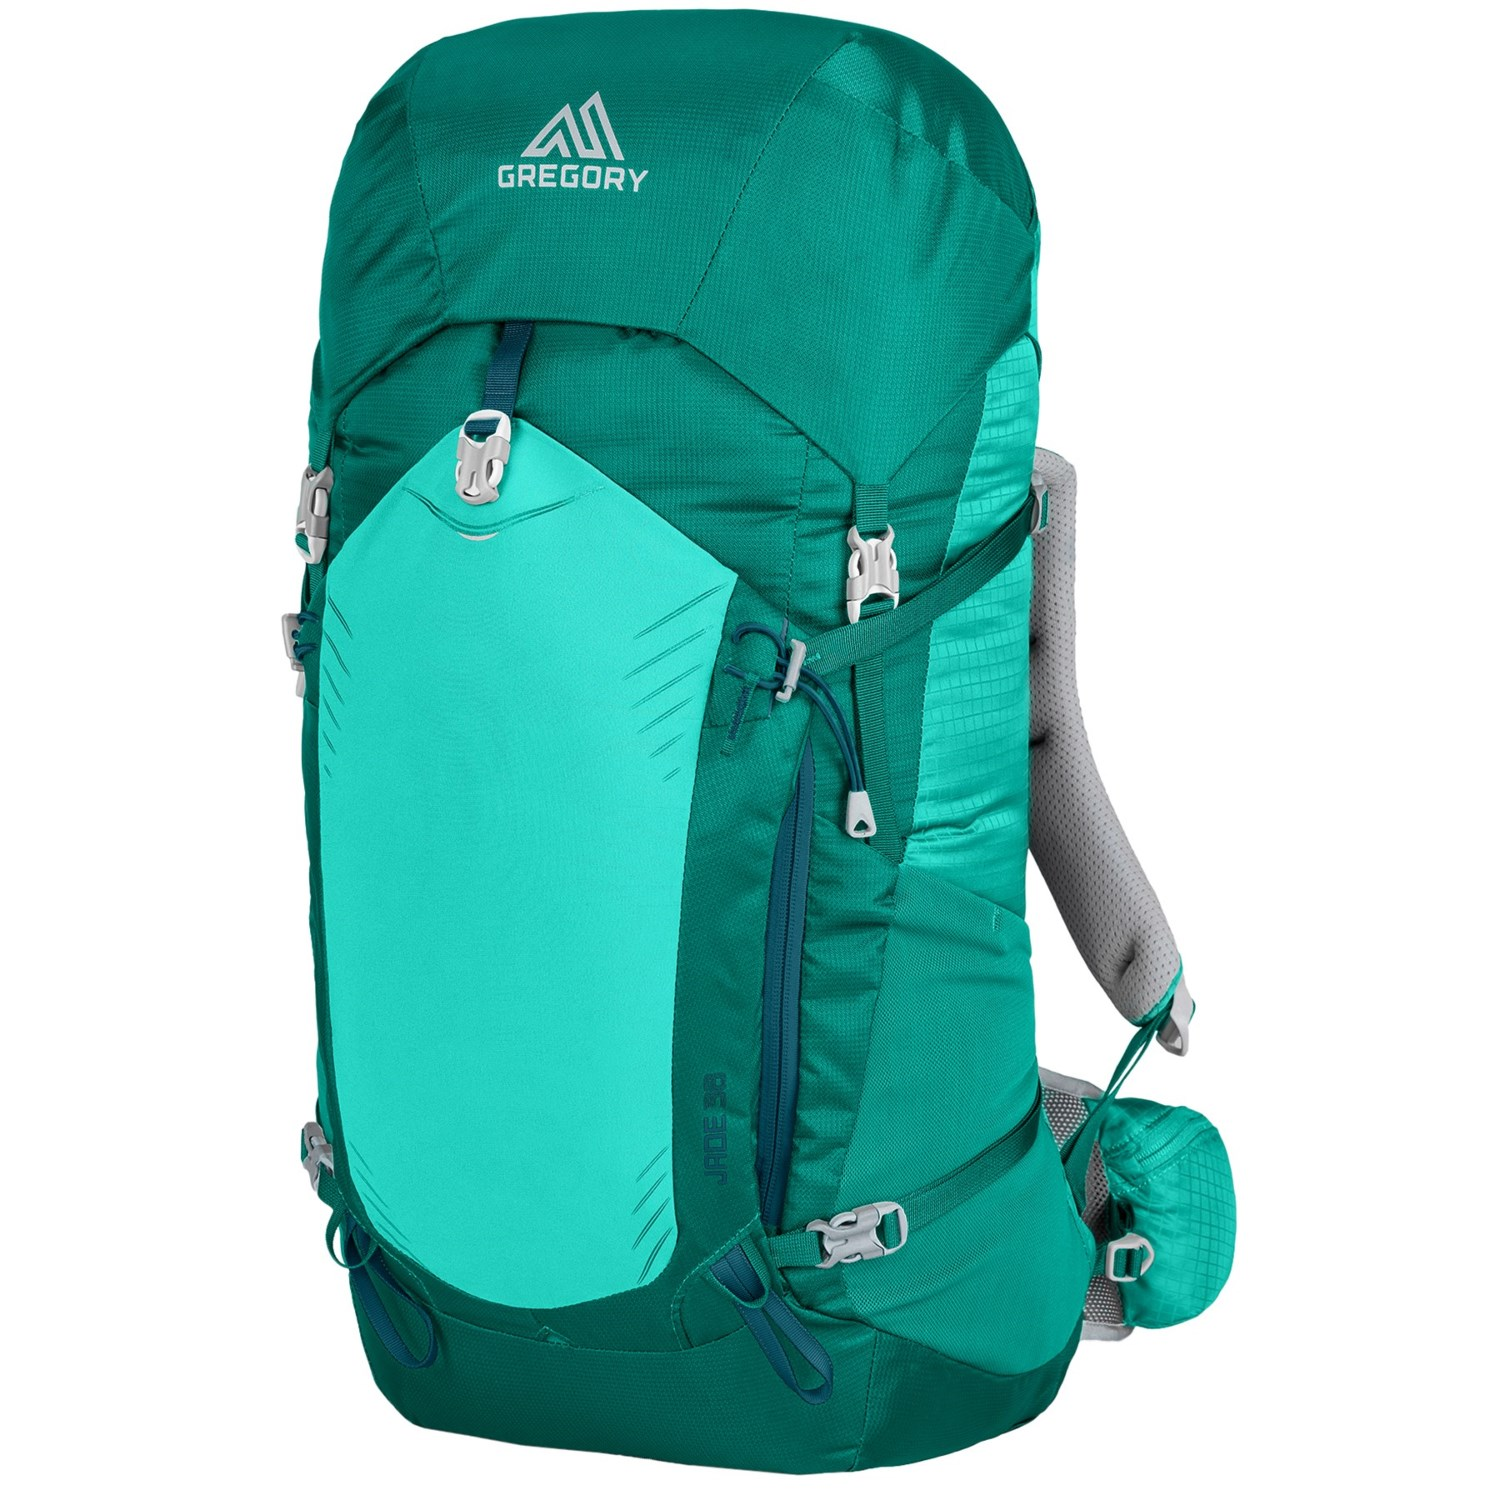 66919bf238f2 How to Choose a Backpack  Sizing   Fit Guide - REI Expert Advice